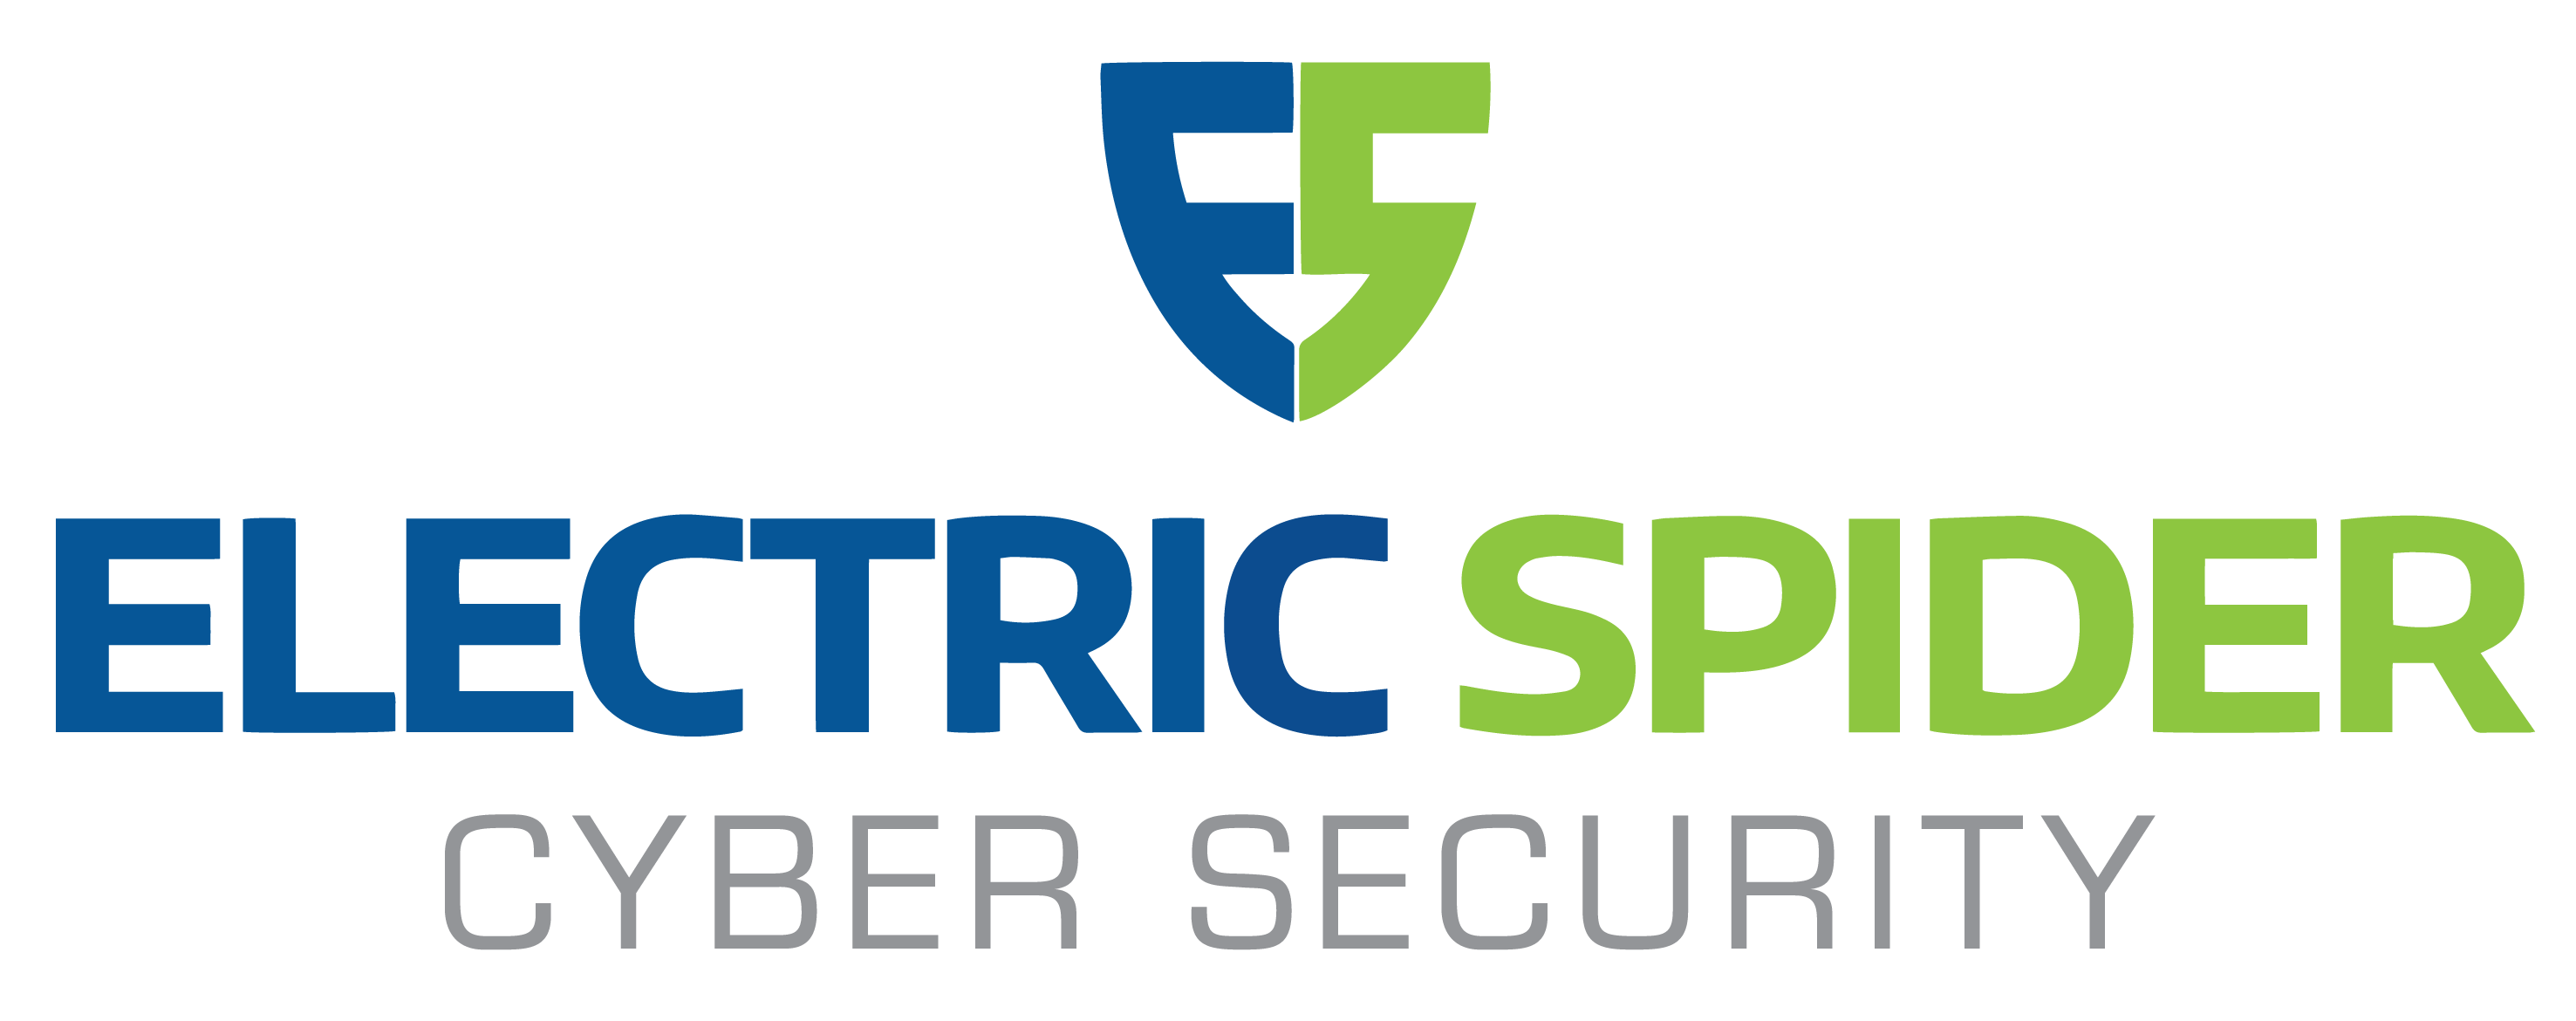 Electric Spider | Data Protection - Managed IT Services - Cybersecurity